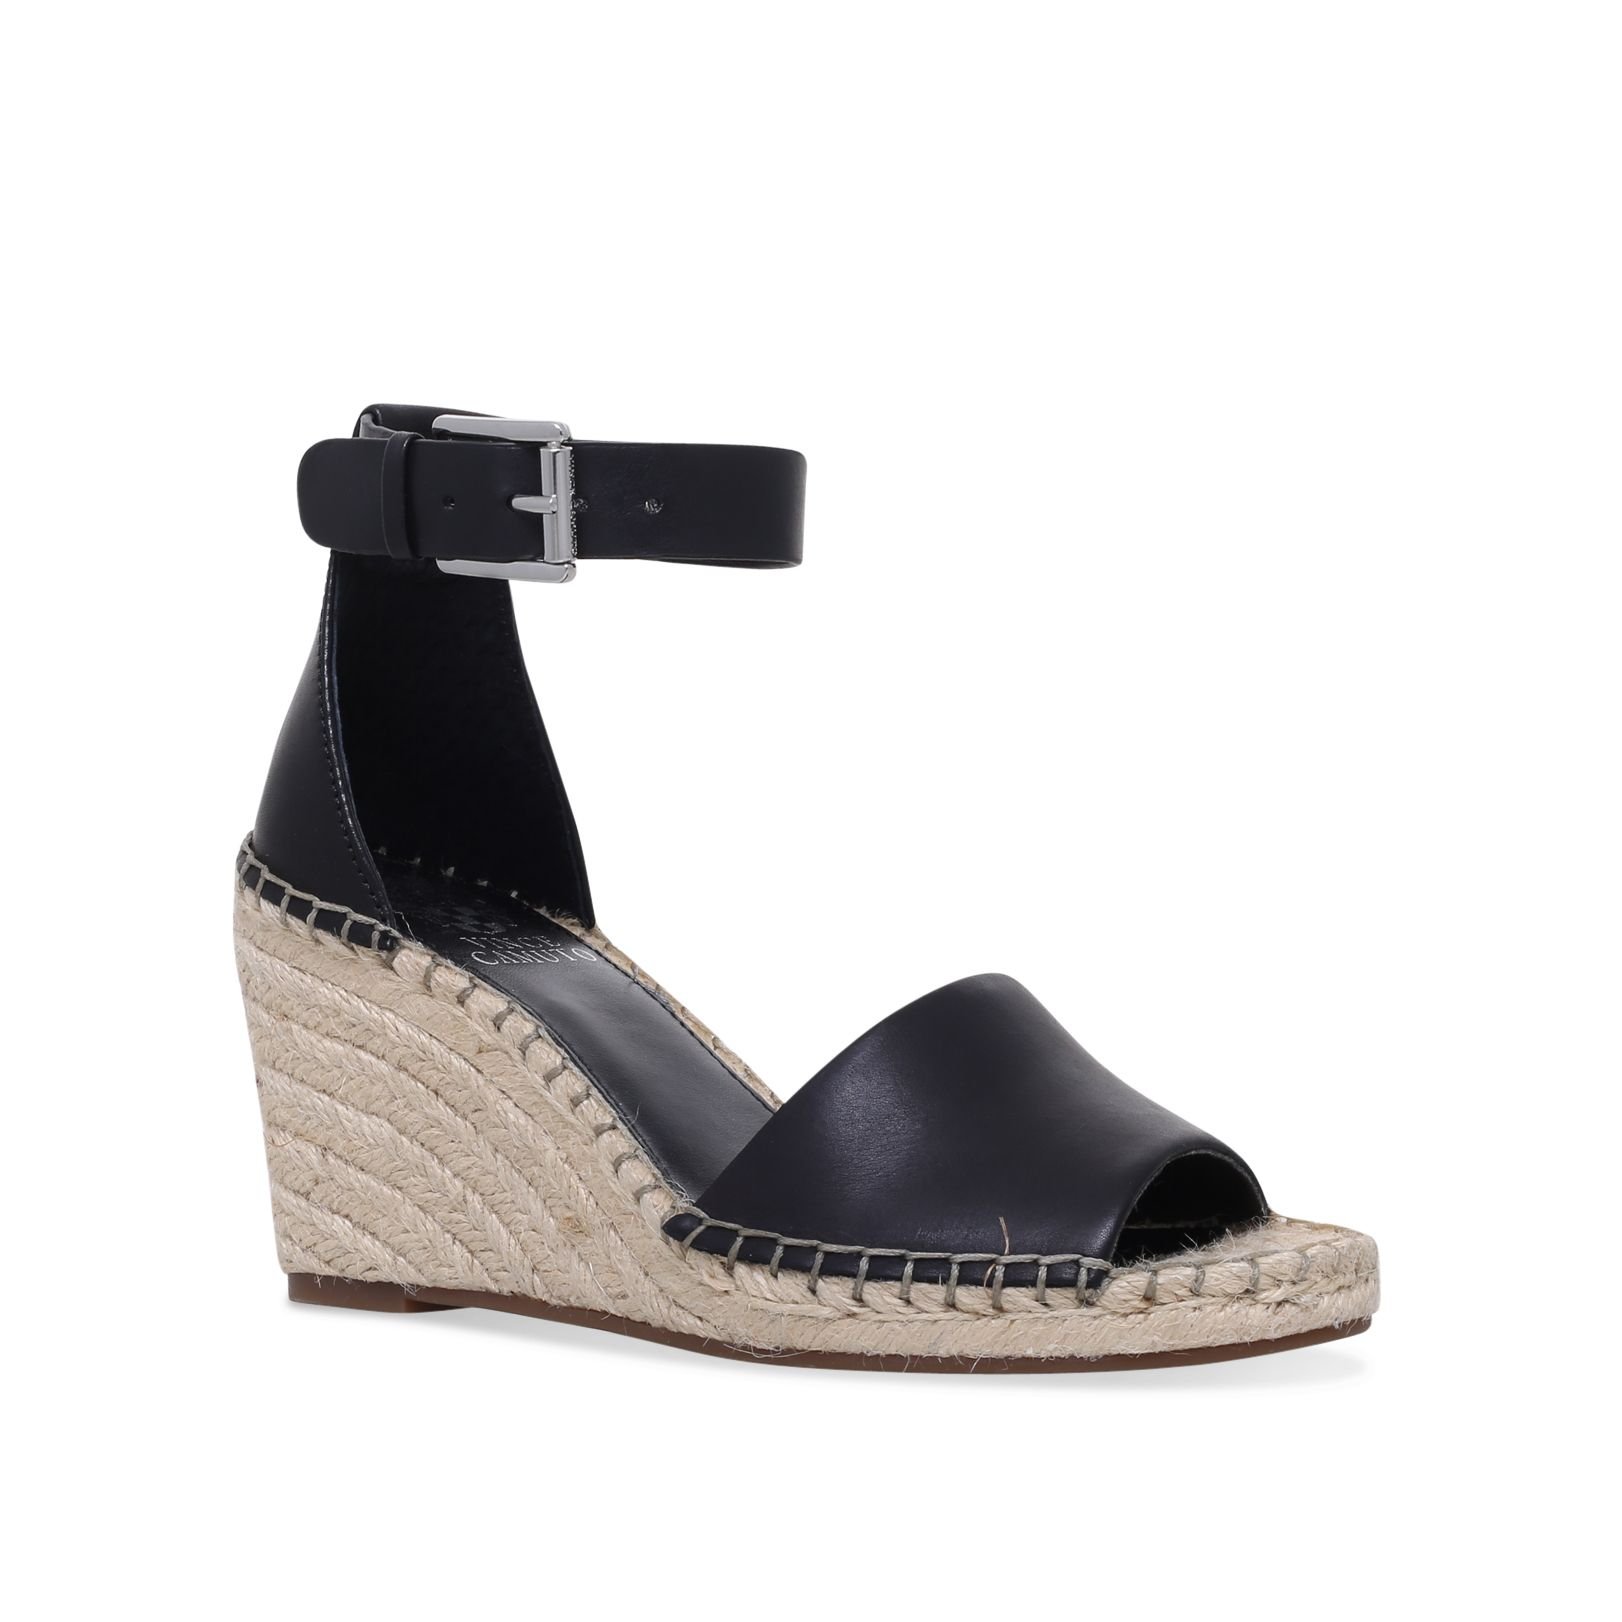 Vince Camuto Leera Sandals, Black